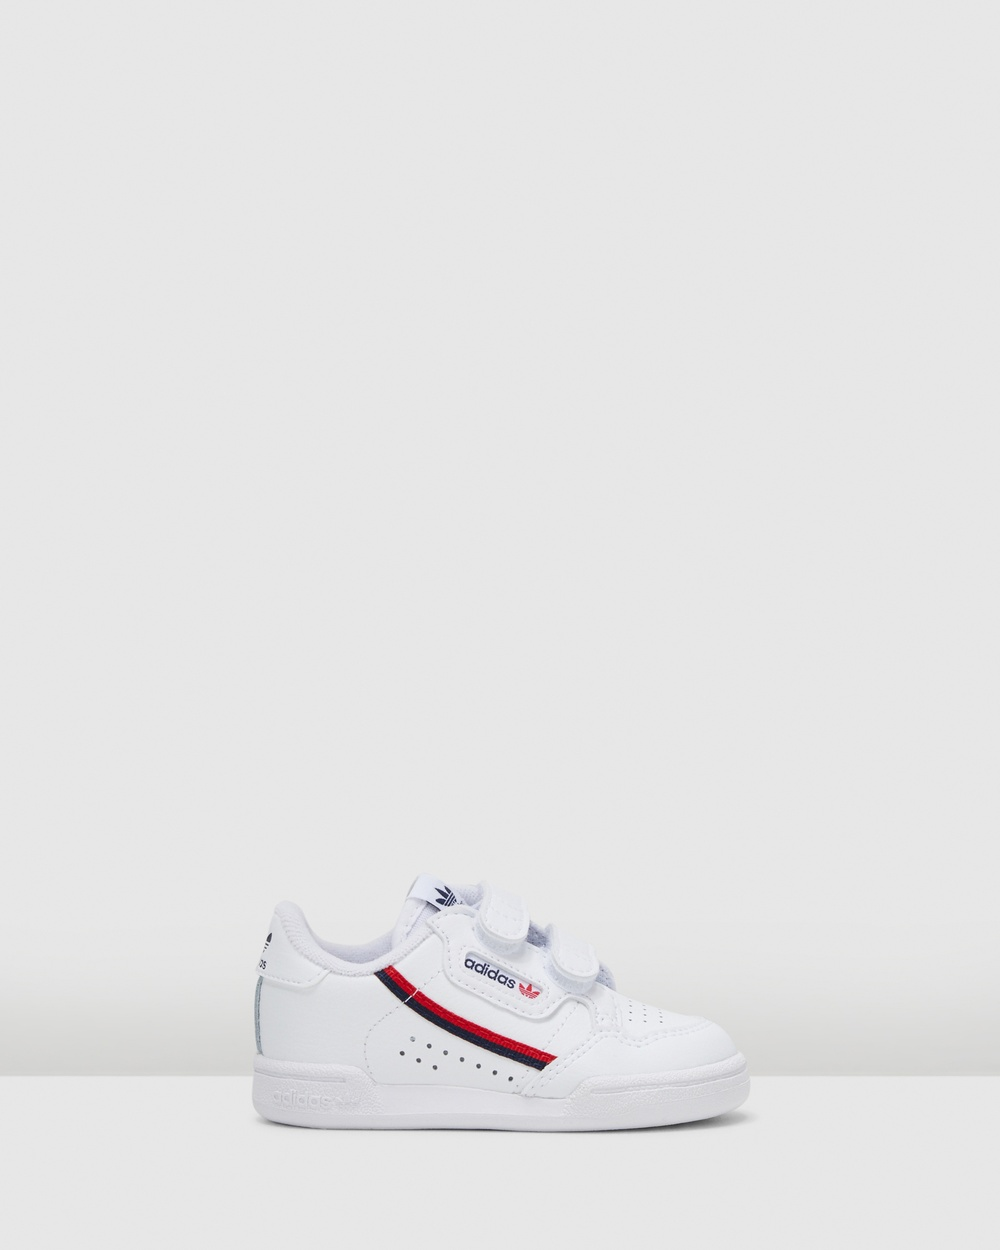 adidas Originals Continental 80 Infant Sneakers White/Red/Navy Australia